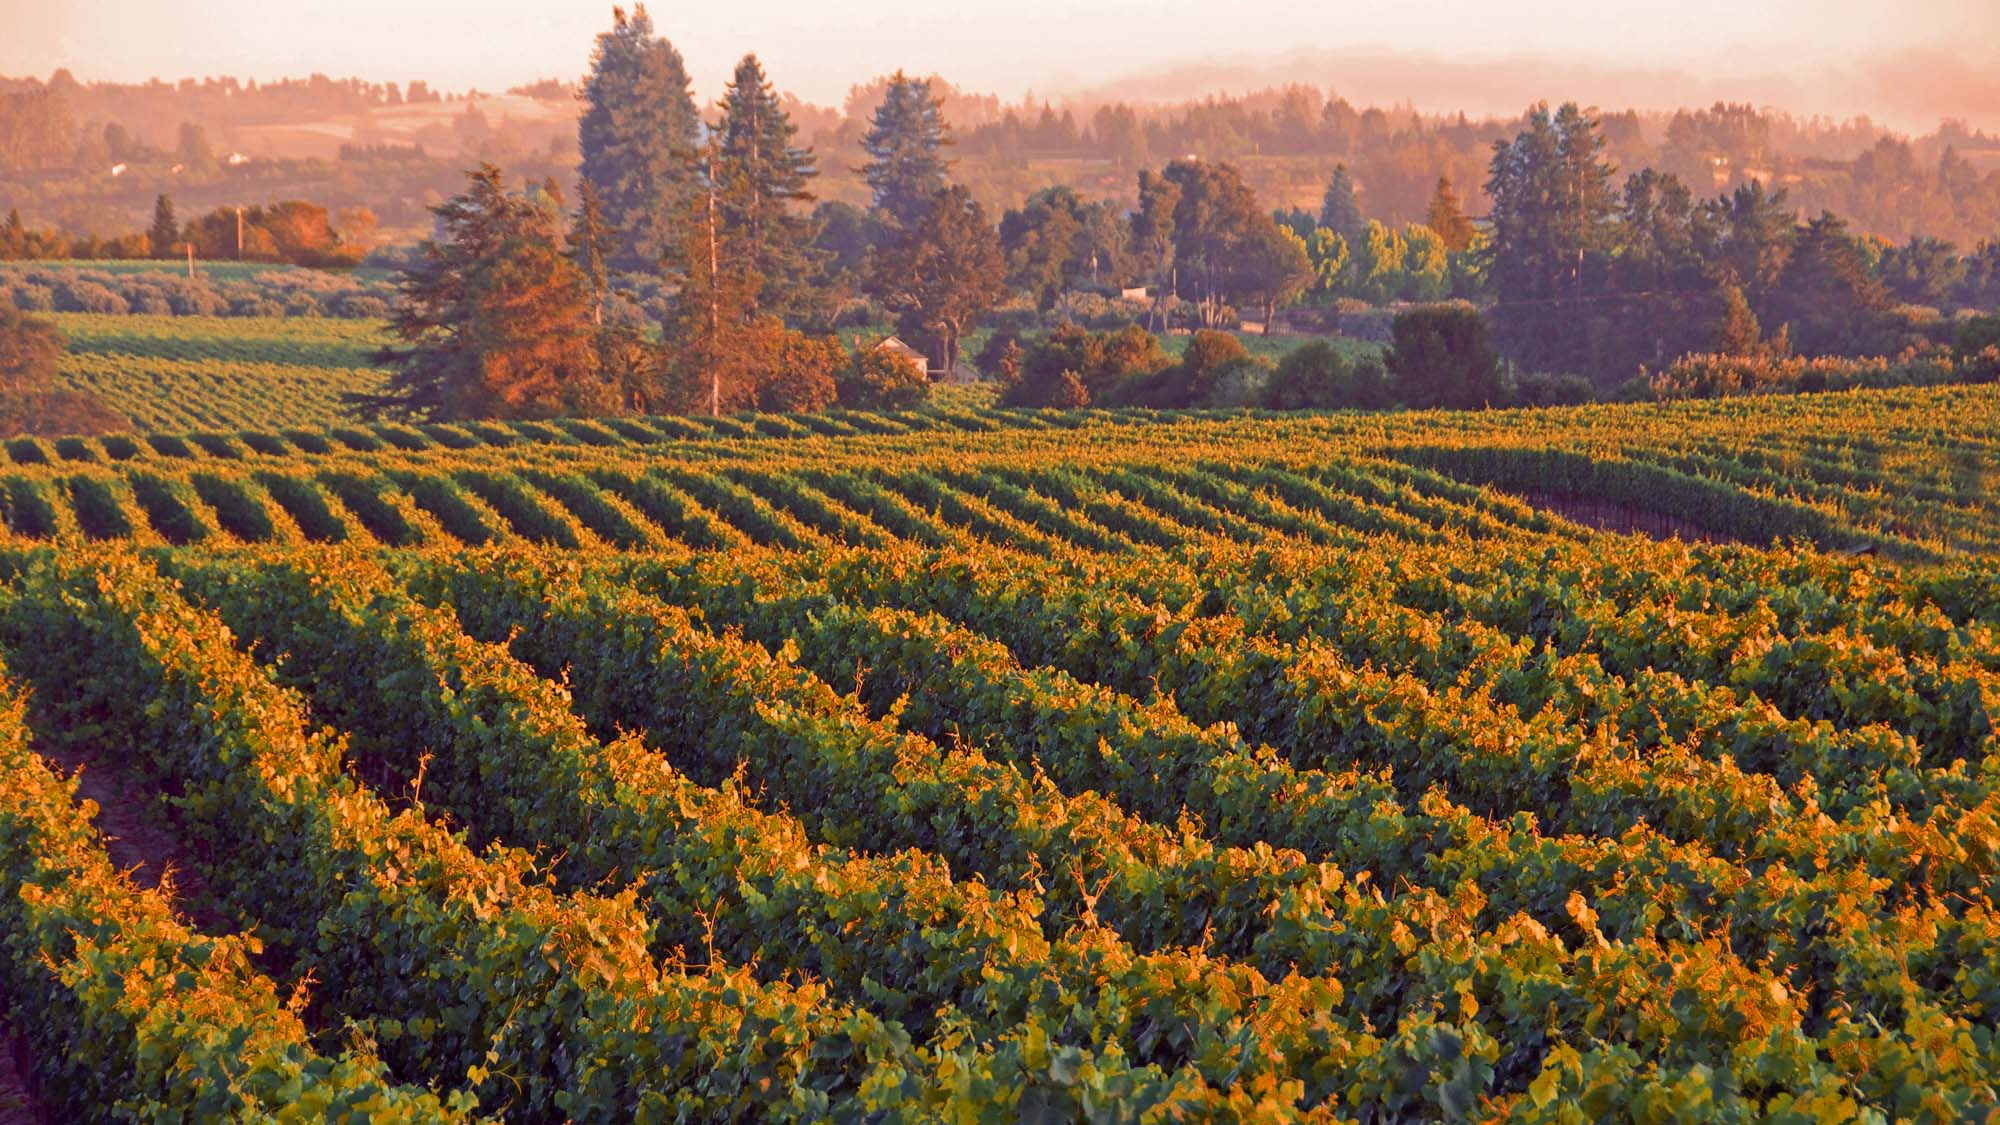 5 Day Trips From San Francisco to Sonoma Wine Country  SonomaCounty.com